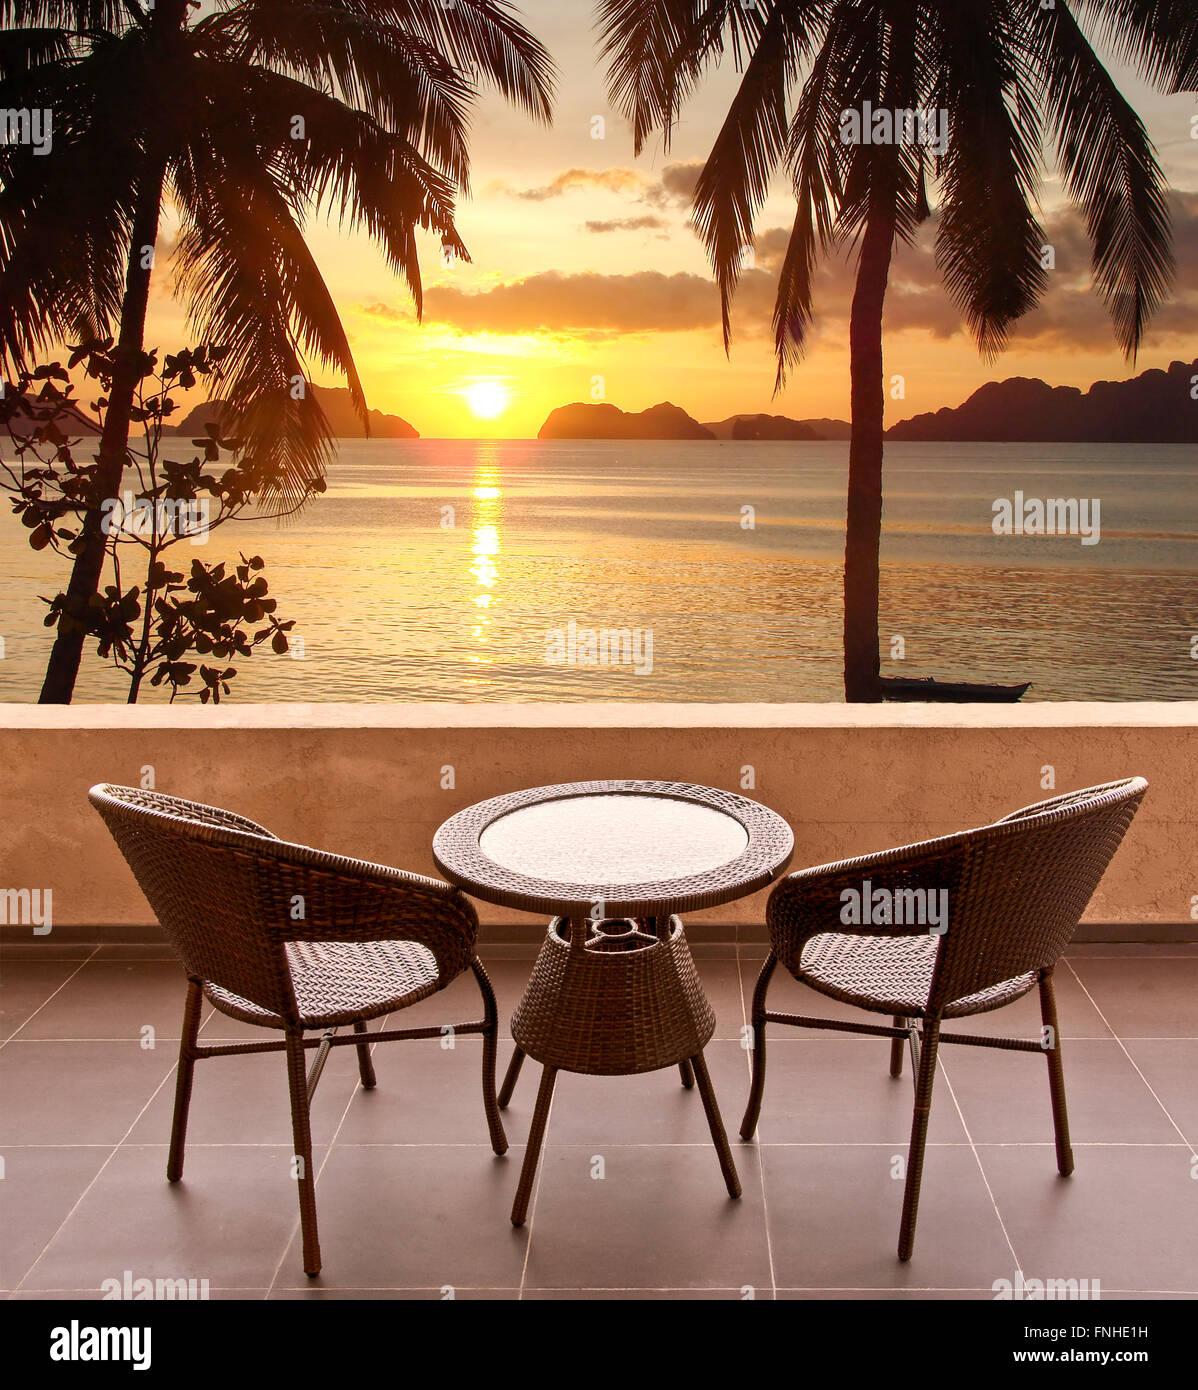 Beach sunset with chairs - Stock Photo Table And Chairs On A Terrace View On A Tropical Beach At Sunset